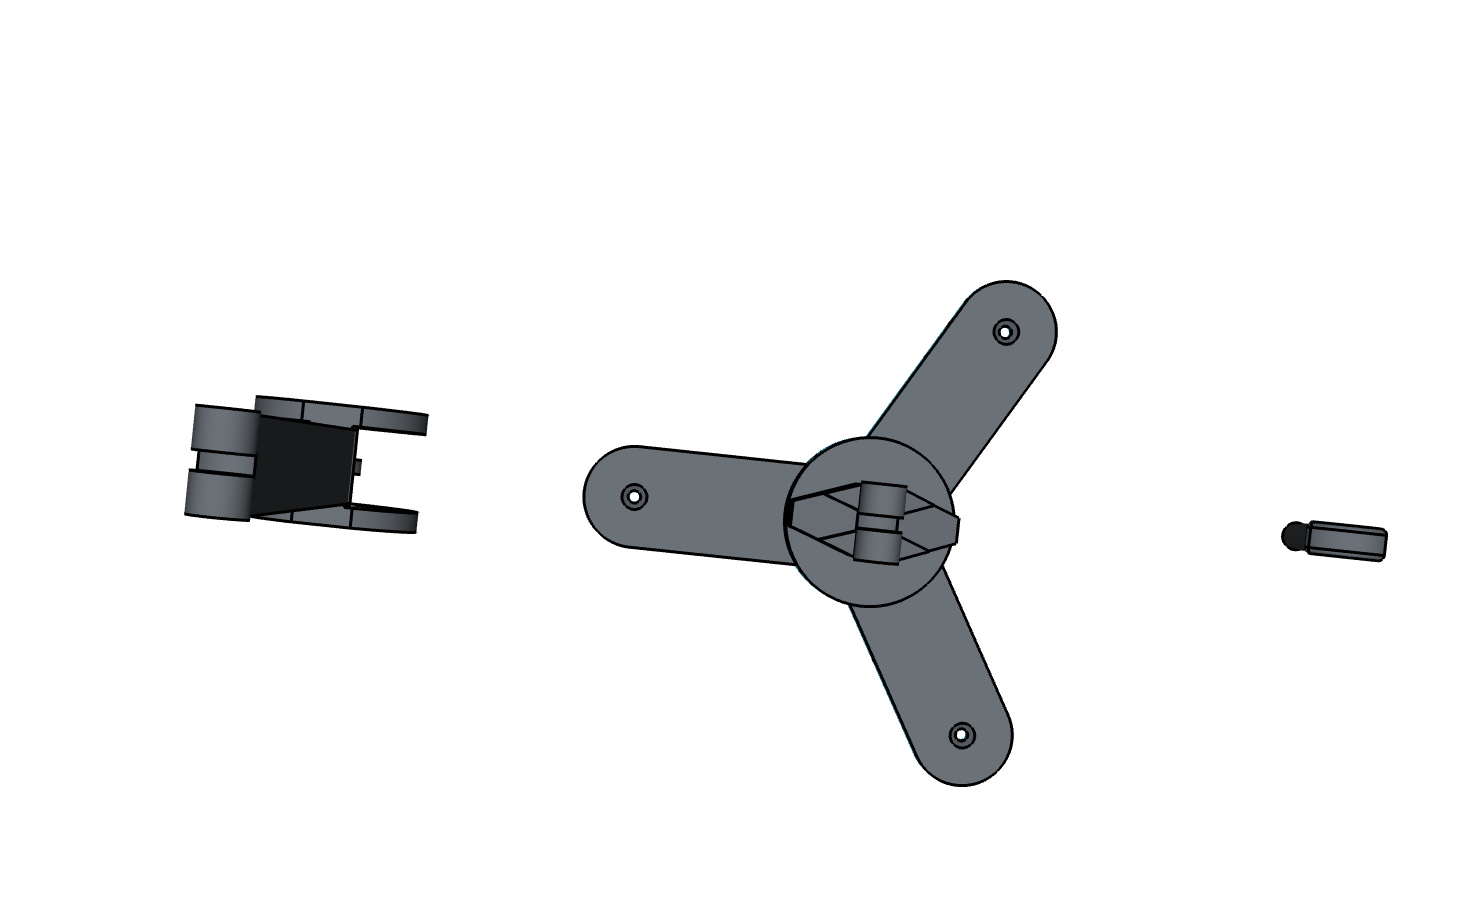 web cam holder top view 3d model